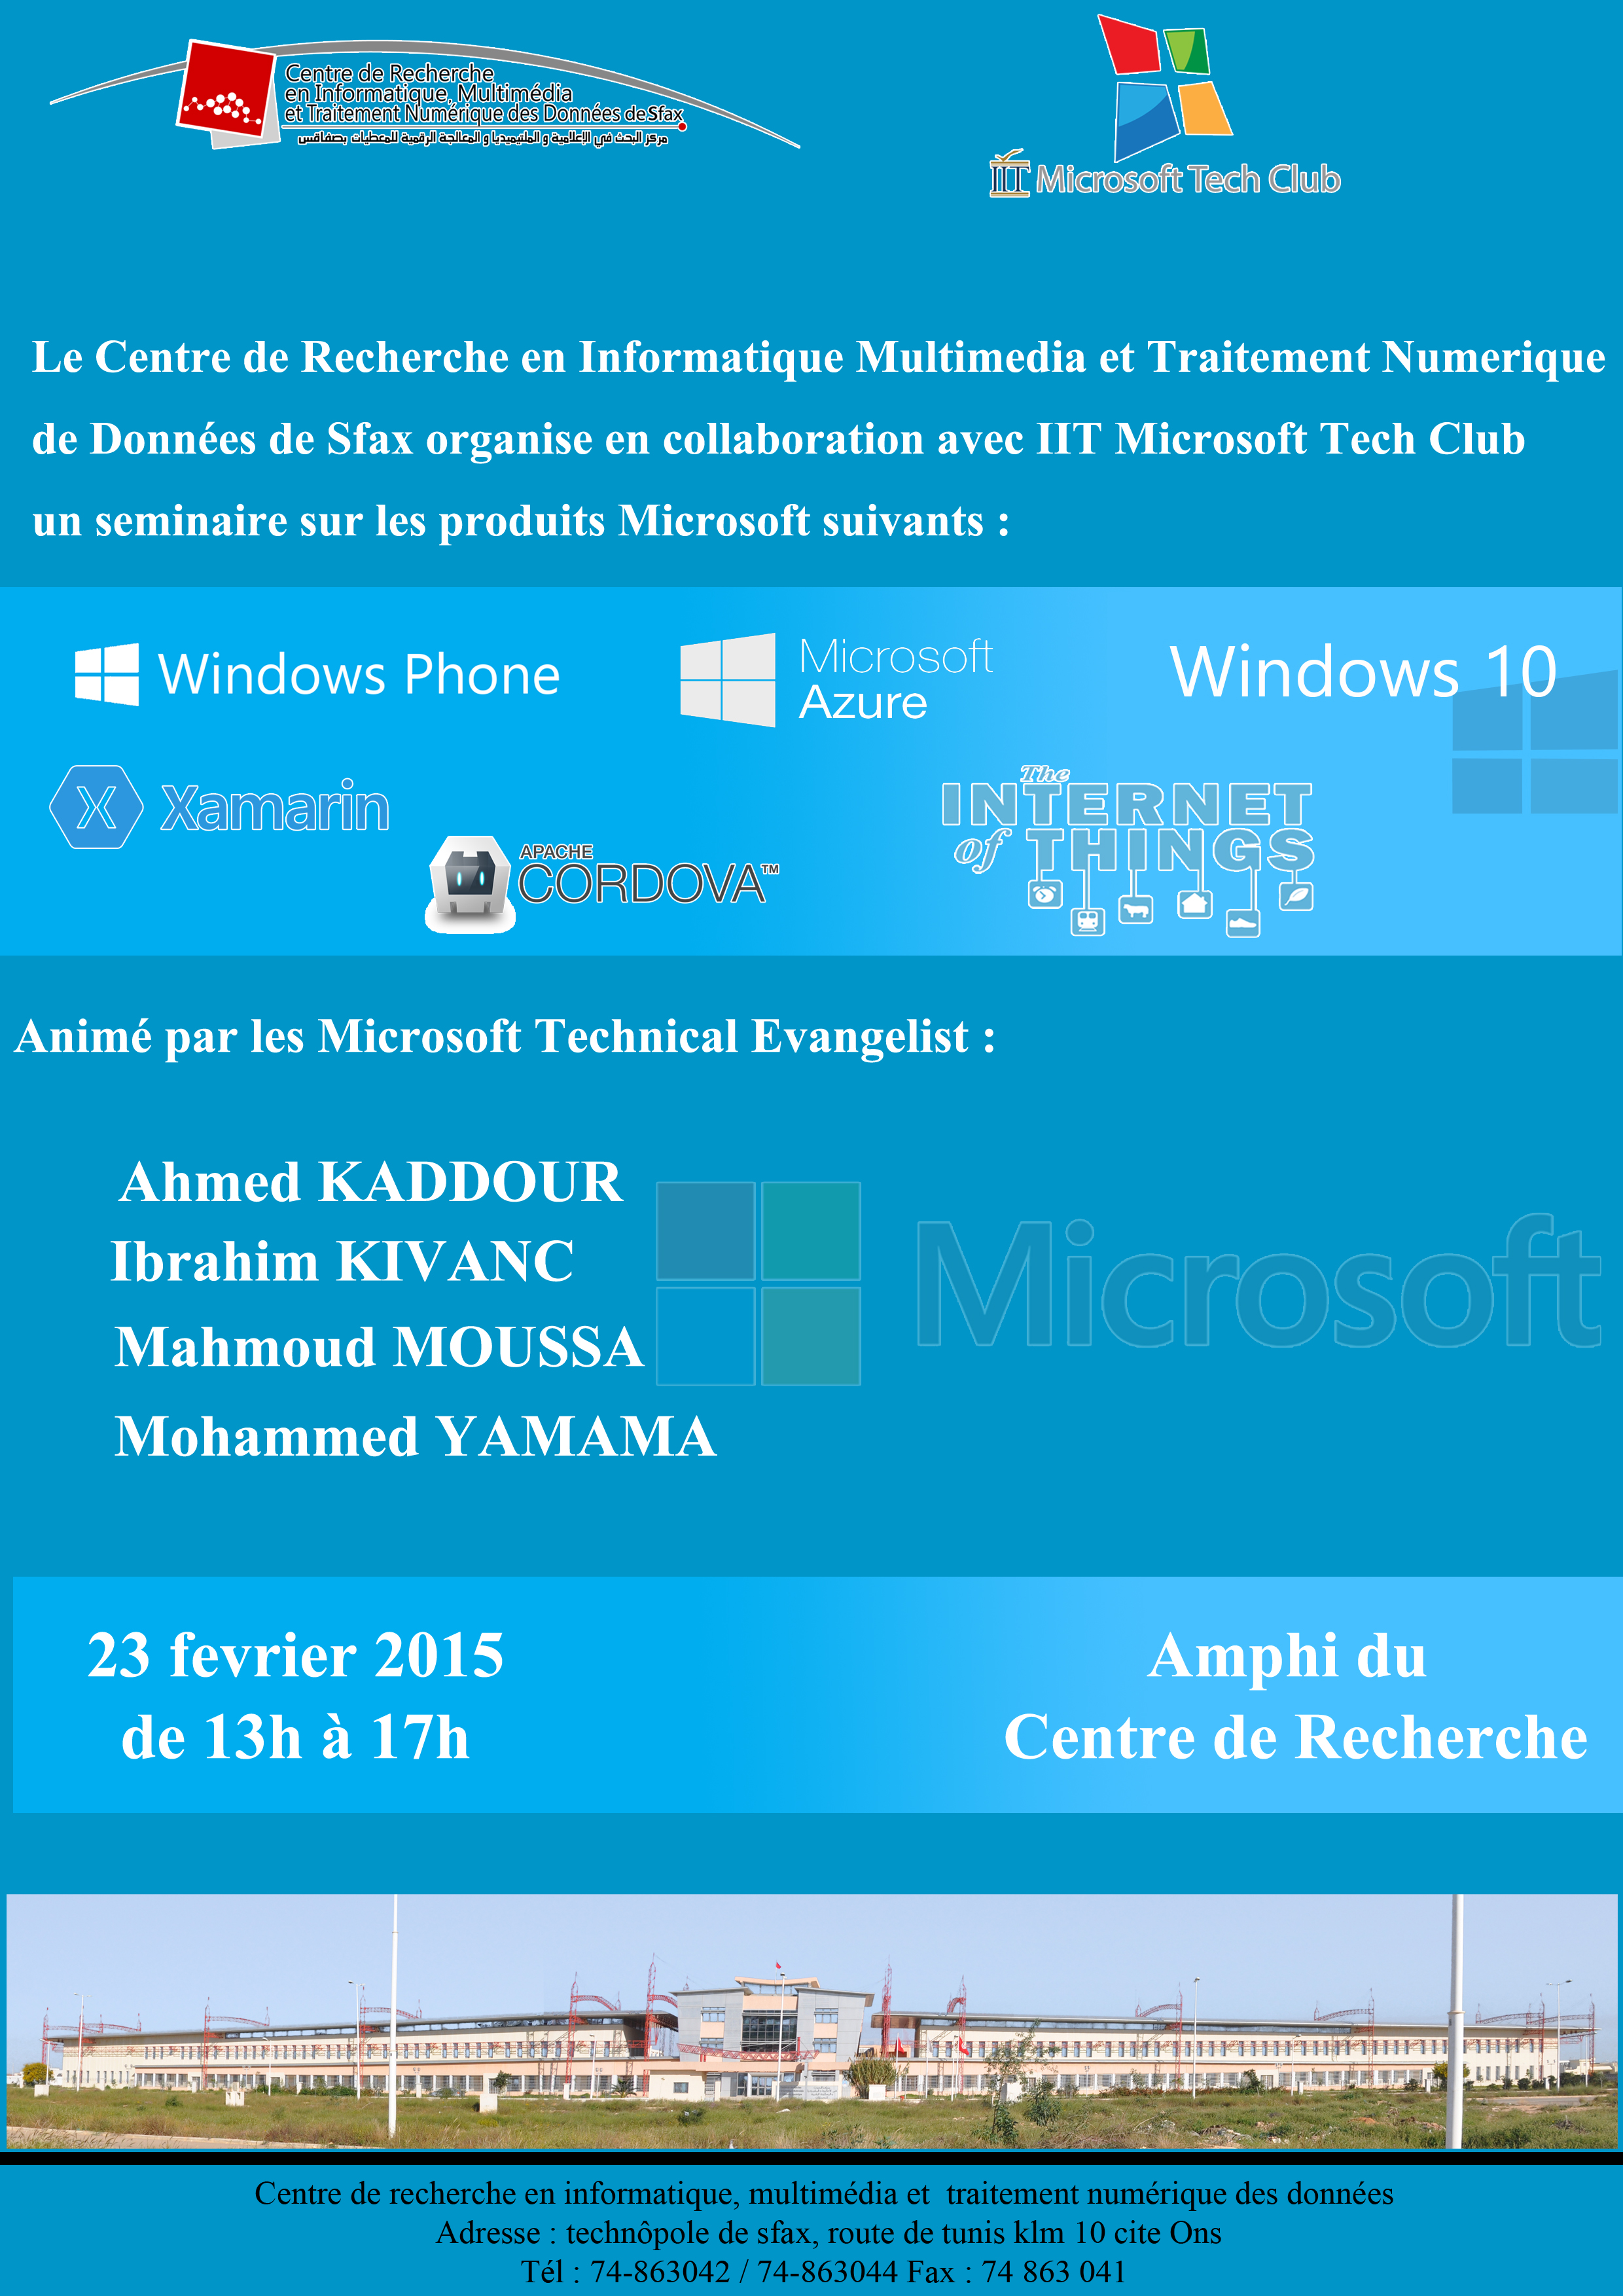 Seminar for Microsoft products